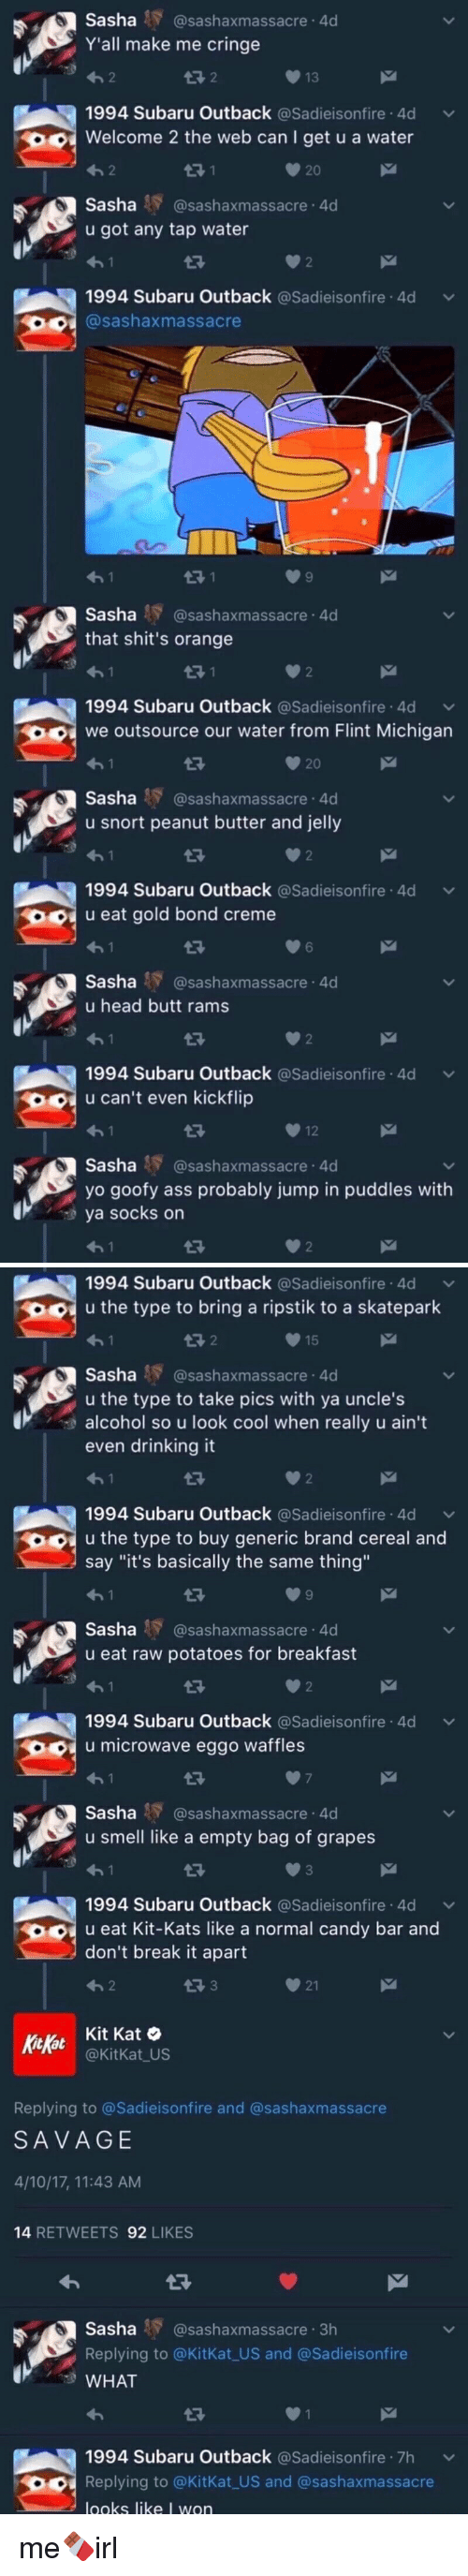 "Looks Cool: Sasha  Y Casashaxmassacre 4d  Y'all make me cringe  13  1994 Subaru Outback  a Sadieisonfire 4d v  Welcome 2 the web can I get u a water  Sasha  AY @sashaxmassacre.4d  u got any tap water  1994 Subaru Outback  asadieisonfire 4d v  Sashaxmassacre  Sasha  HY (asashaxmassacre 4d  that shit's orange  1994 Subaru Outback  asadieisonfire 4d v  we outsource our water from Flint Michigan  20  Sasha AY @sashaxmassacre.4d  u snort peanut butter and jelly  1994 Subaru Outback  asadieisonfire 4d v  u eat gold bond creme  Sasha  Ay @sashaxmassacre.4d  u head butt rams  1994 Subaru Outback  asadieisonfire 4d v  u can't even kickflip  Sasha  AY @sashaxmassacre.4d  yo goofy ass probably jump in puddles with  ya socks on   1994 Subaru Outback  asadieisonfire 4d v  O u the type to bring a ripstik to a skatepark  15  Sasha AY @sashaxmassacre .4  u the type to take pics with ya uncle's  alcohol so u look cool when really u ain't  even drinking it  1994 Subaru Outback  Sadieisonfire 4d v  u the type to buy generic brand cereal and  say ""it's basically the same thing""  Sasha RY @sashaxmassacre.4d  u eat raw potatoes for breakfast  1994 Subaru Outback  asadieisonfire 4d v  u microwave eggo waffles  Sasha  RY @sashaxmassacre.4d  u smell like a empty bag of grapes  1994 Subaru Outback  asadieisonfire 4d v  u eat Kit-Kats like a normal candy bar and  don't break it apart  21  Kit Kat O  Kitkat  @KitKat US  Replying to @Sadieisonfire and @sash axmassacre  SAVAGE  4/10/17, 11:43 AM  14  RETWEETS  92  LIKES  Sasha sashaxmassacre 3h  Replying to @KitKat US and @Sadieisonfire  WHAT  1994 Subaru Outback  a Sadieisonfire 7h v  Replying to @KitKat US and @sashaxmassacre  looks like I won me🍫irl"